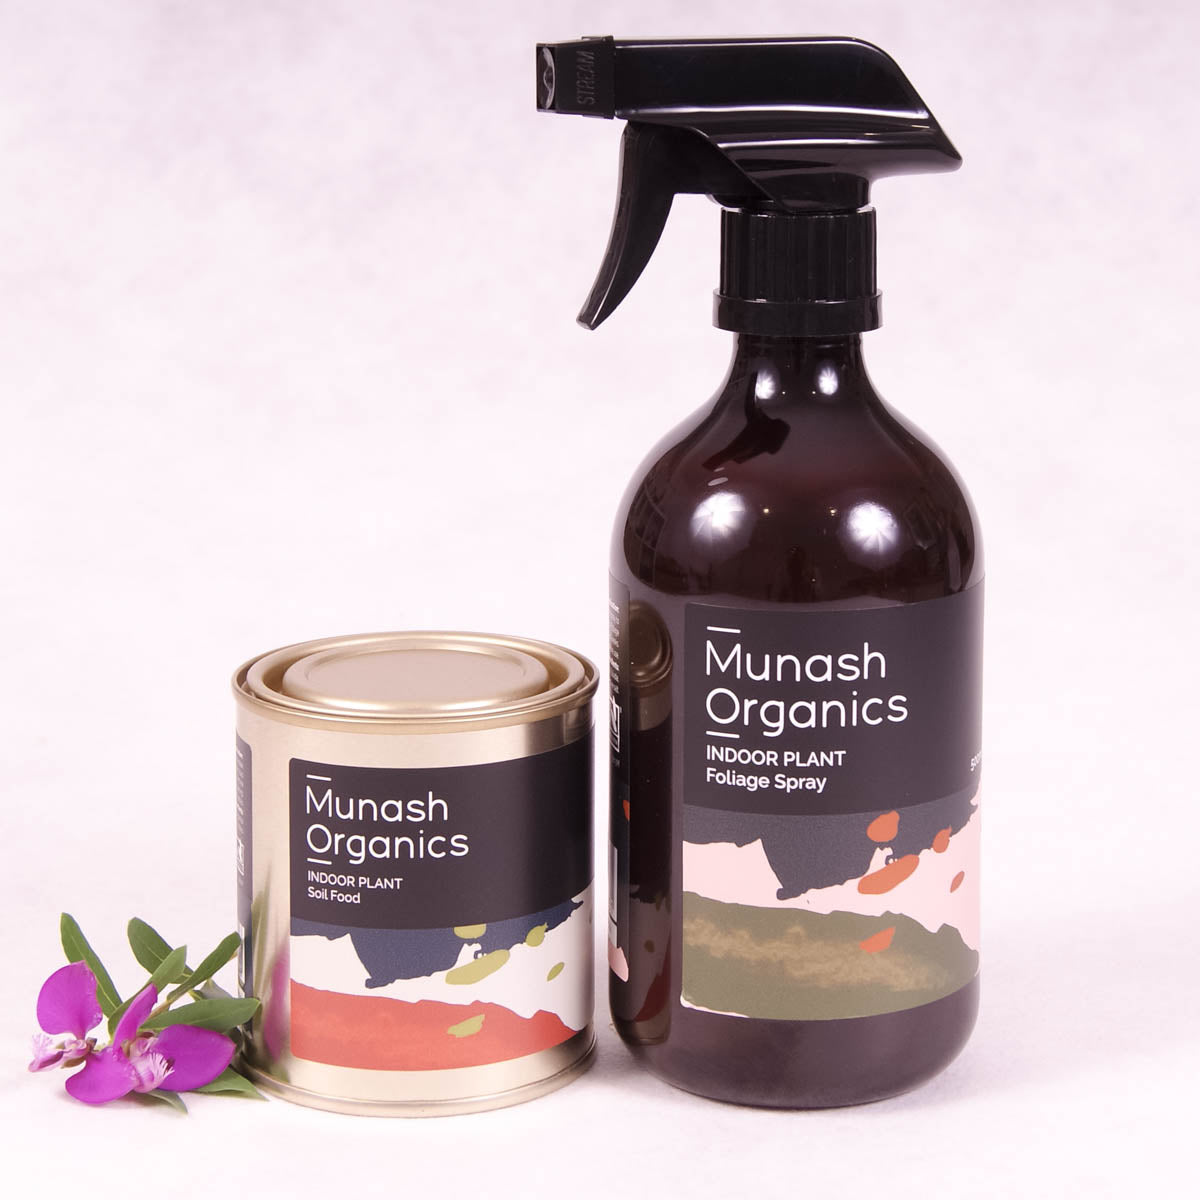 Indoor Plant Care Bundle By Munash Organics - Plant Food - Throw Some Seeds - Australian gardening gifts and eco products online!